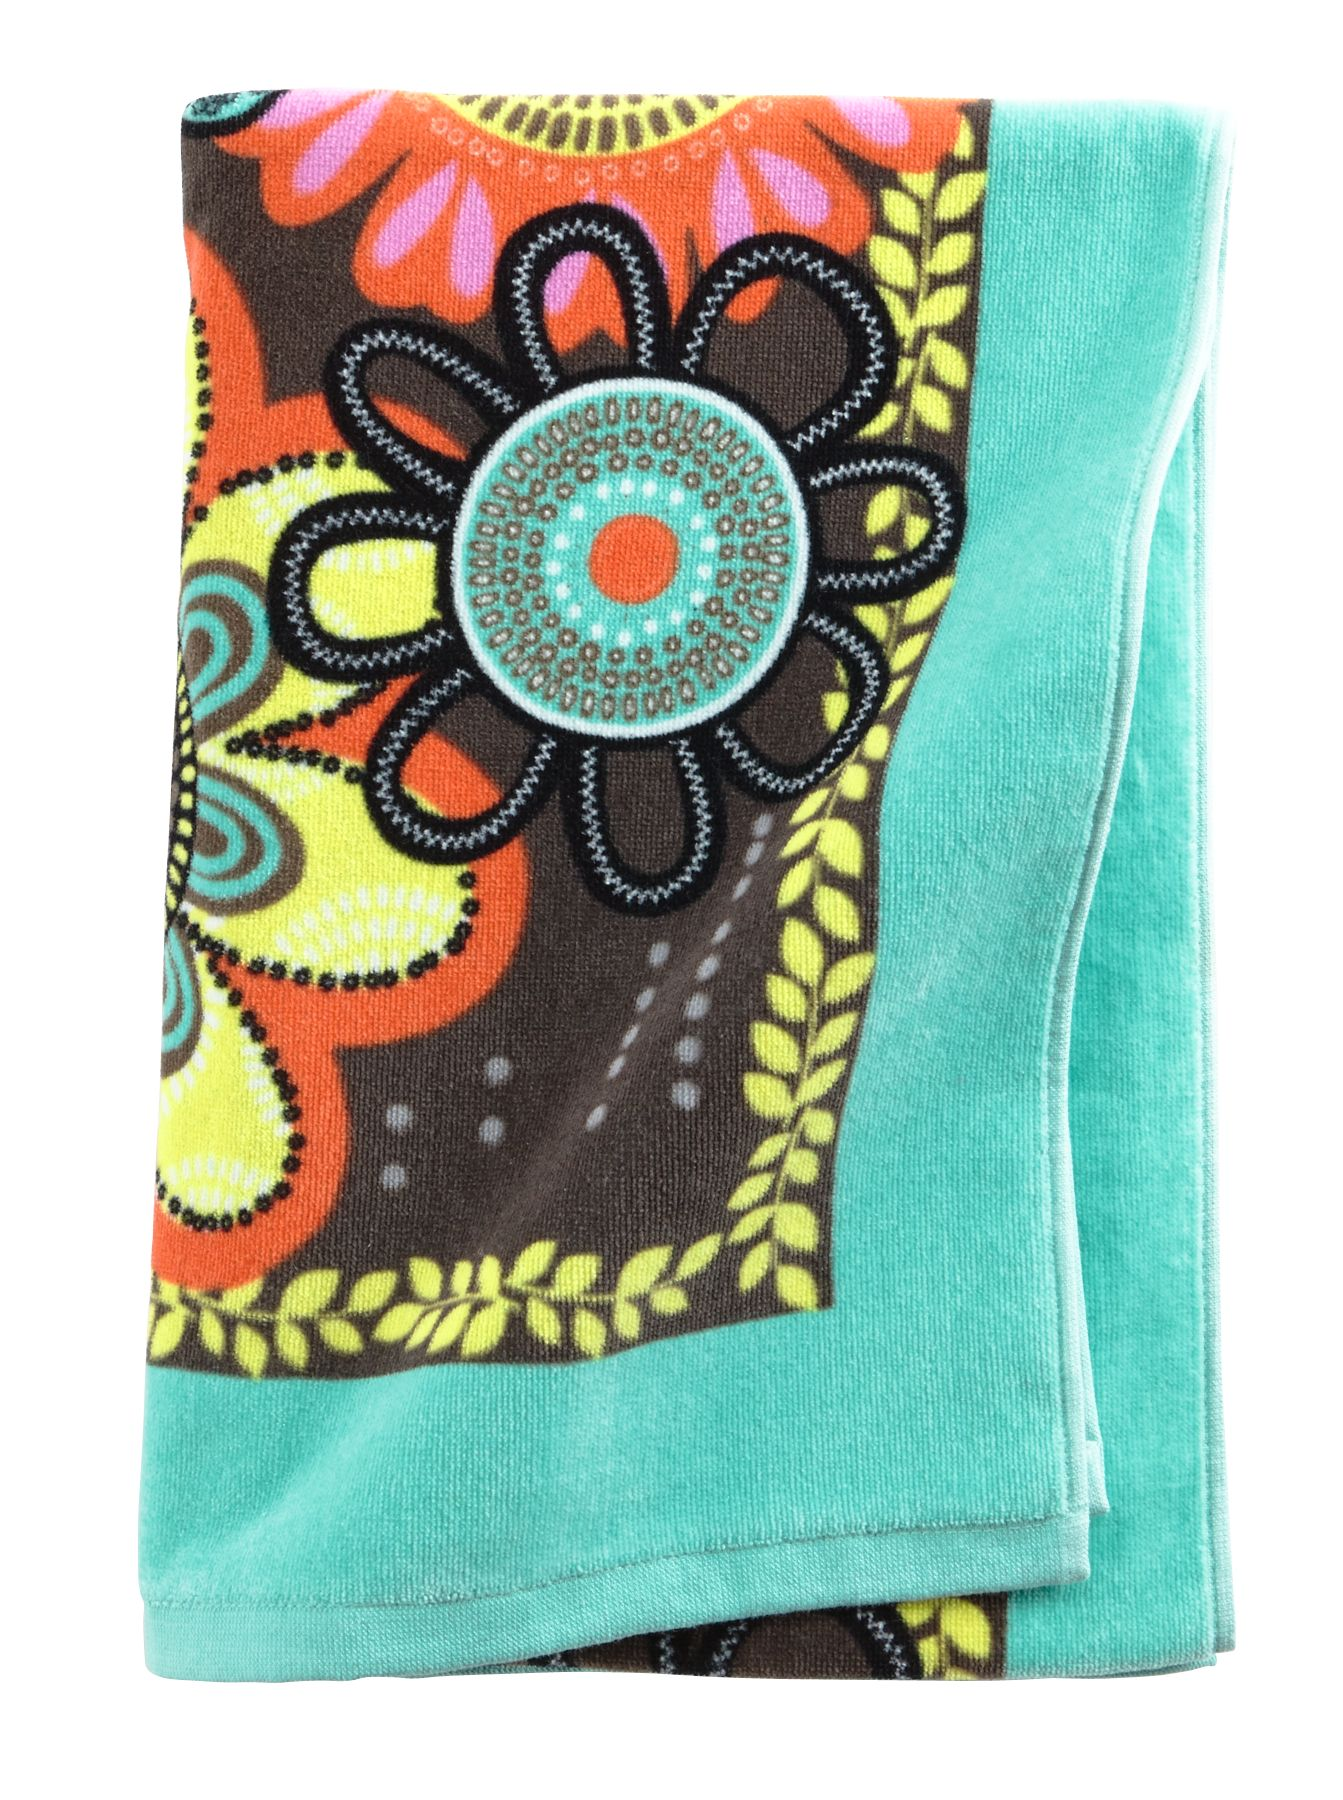 Vera Bradley Beach Towel in Flower Shower $ 35.00